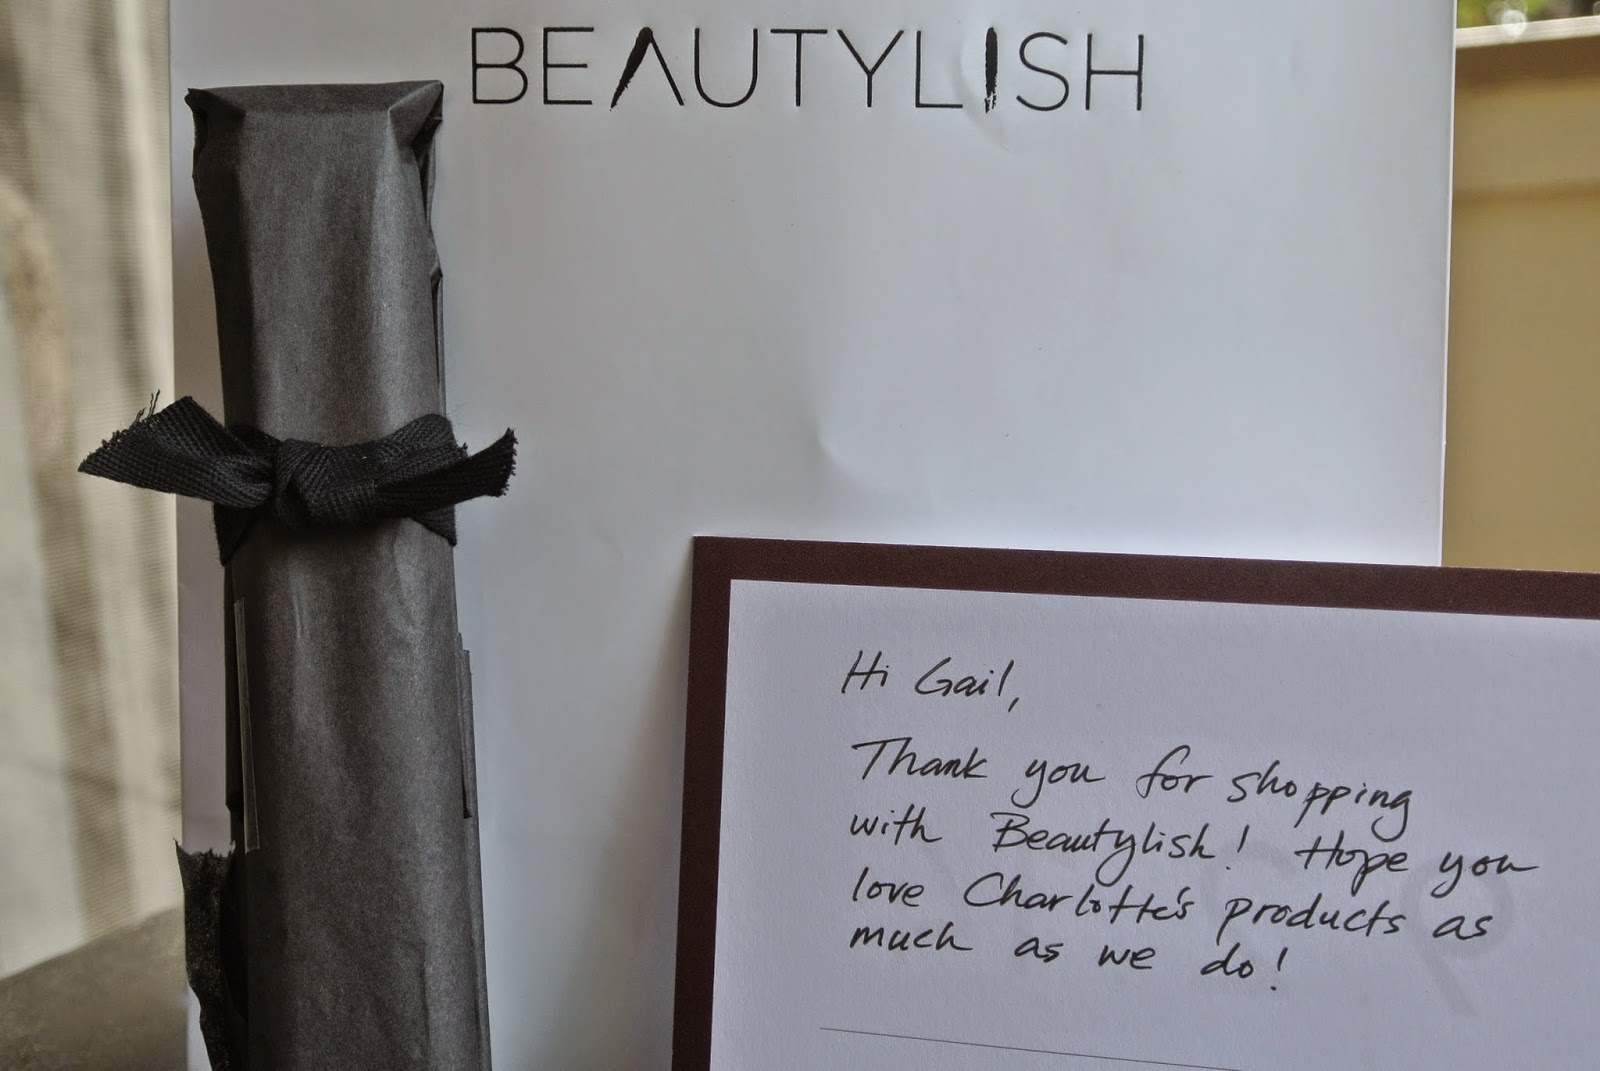 Beautylish packaging, handwritten note